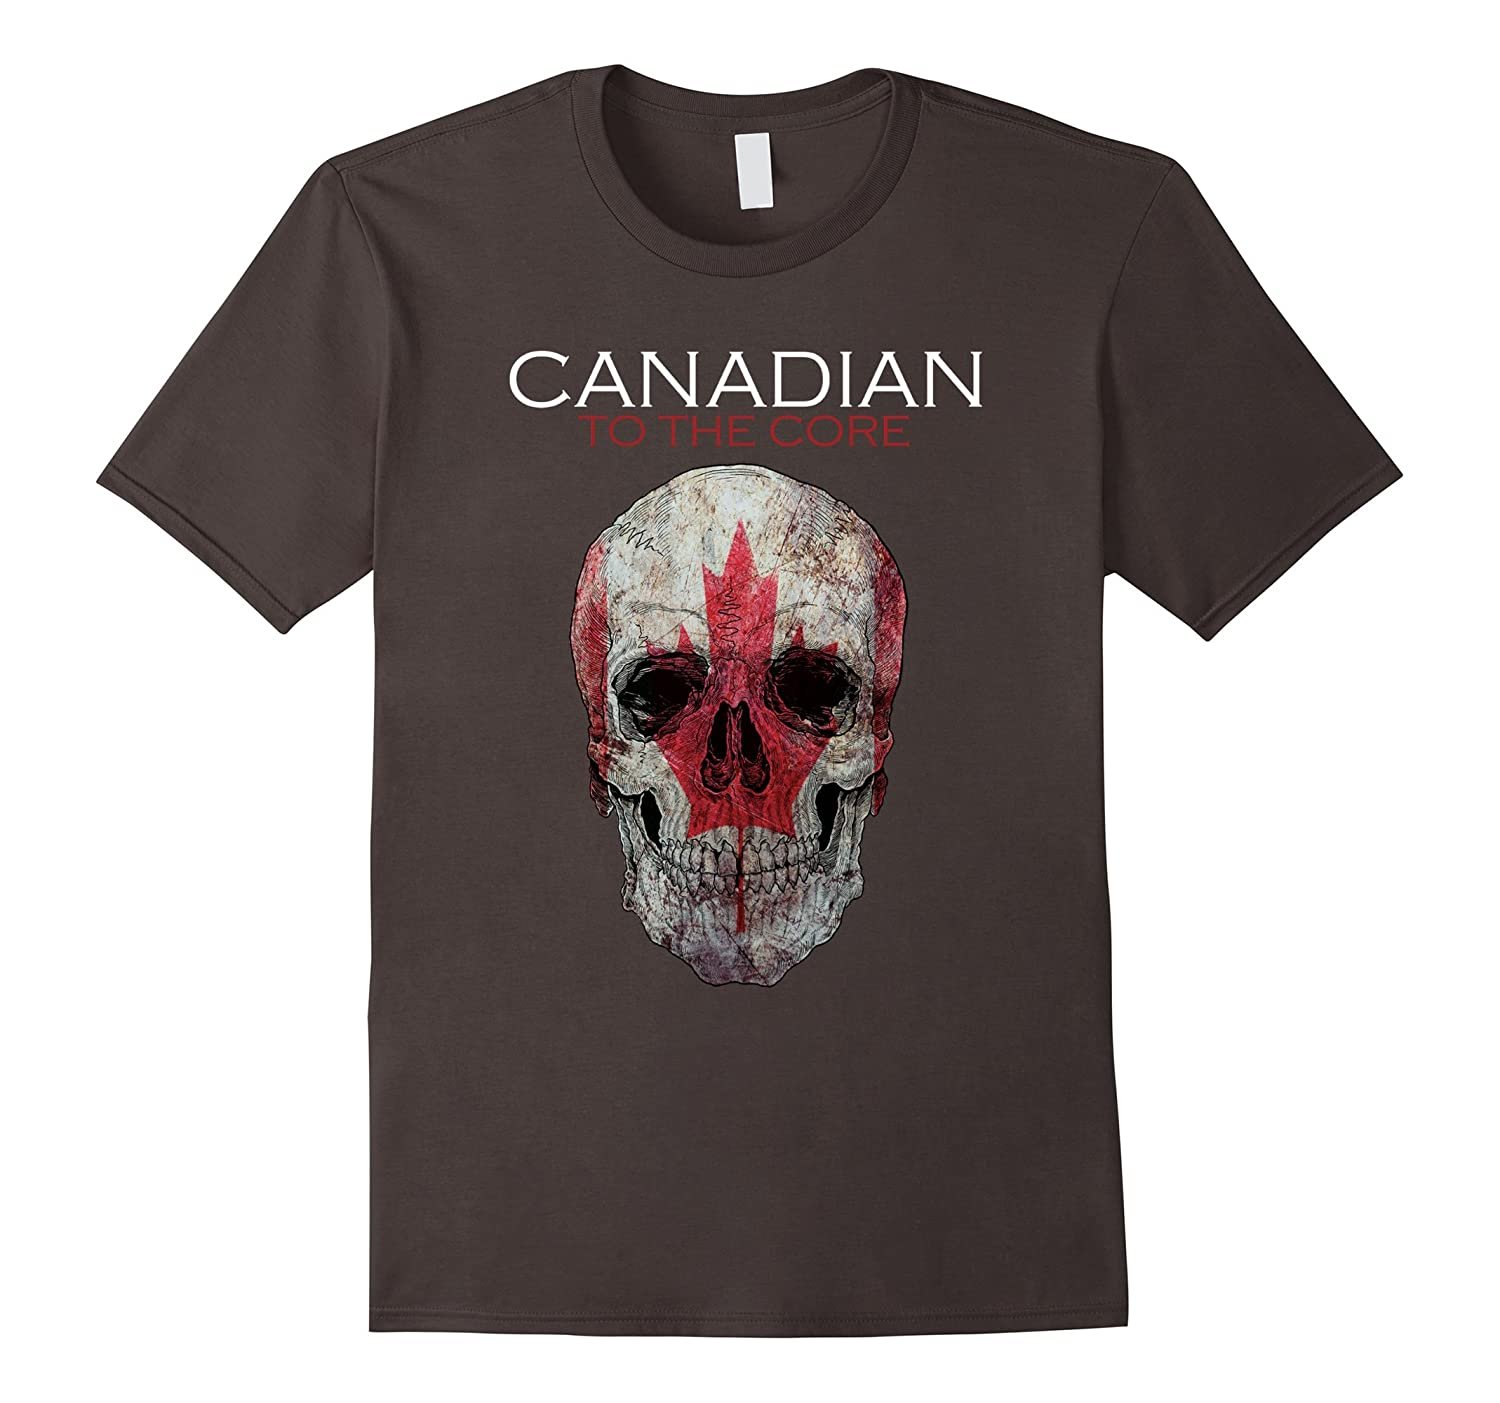 Canadian to the core skull